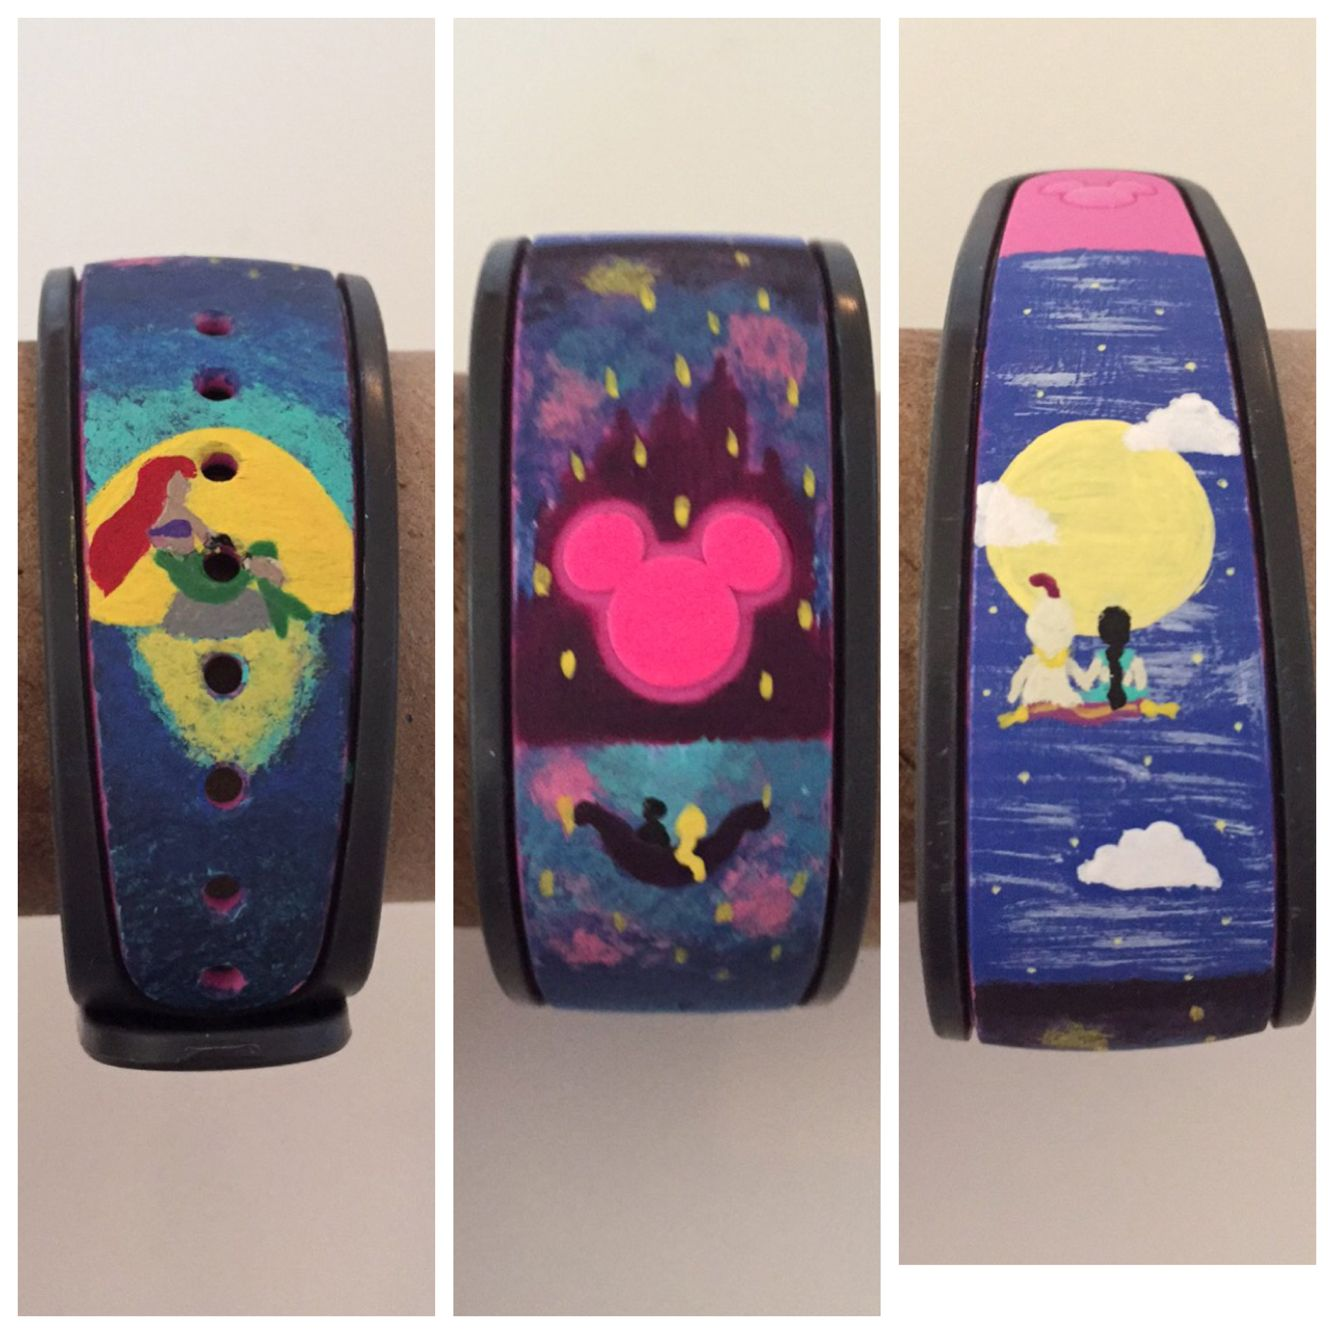 I hand-painted my magic band for my trip to Disney